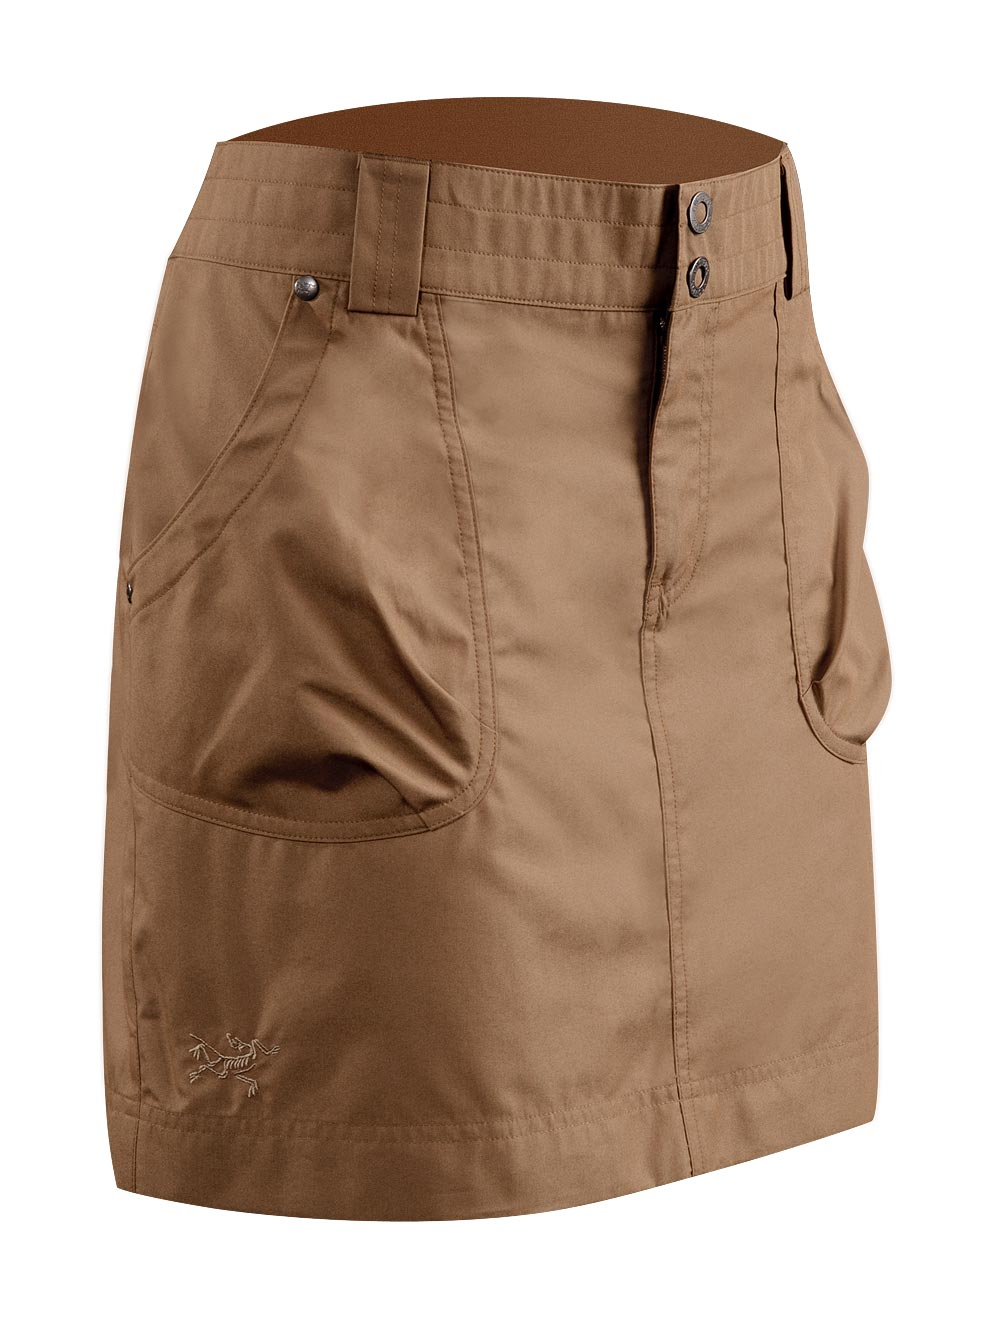 Arcteryx Nubian Brown Rana Skirt - New